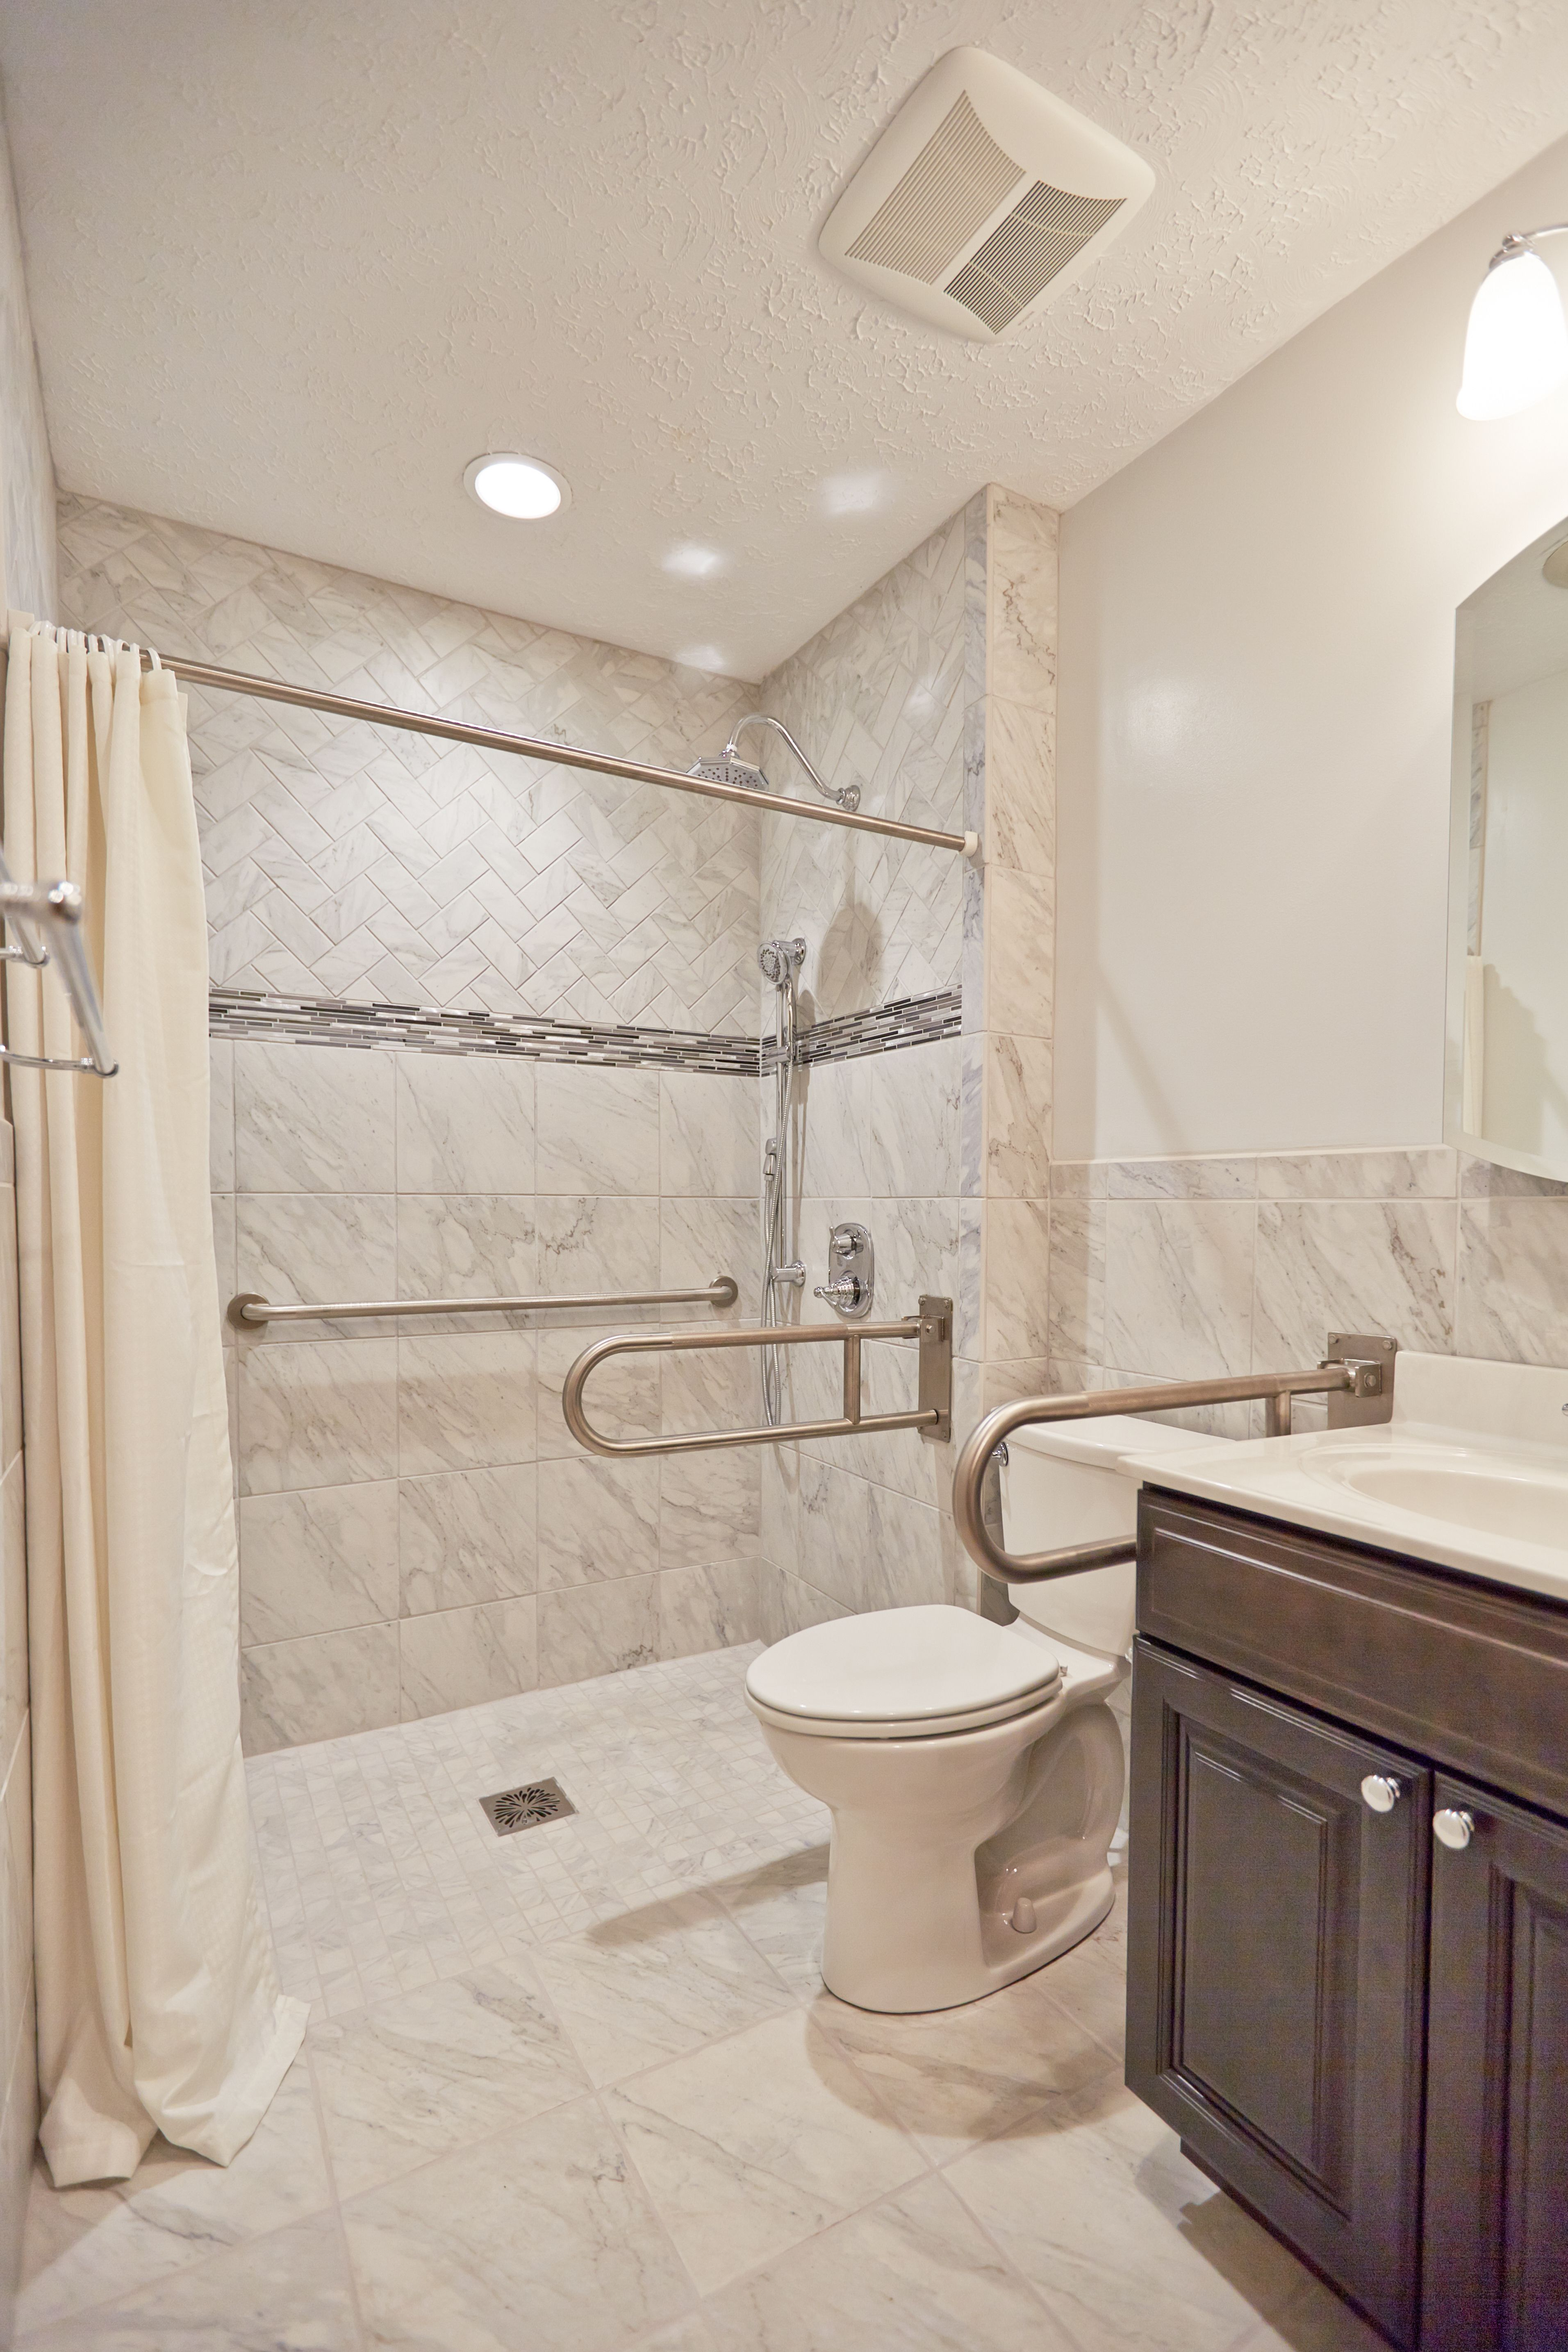 bathroom accessible vanity best bath roll in shower tiled bathroon rh pinterest com